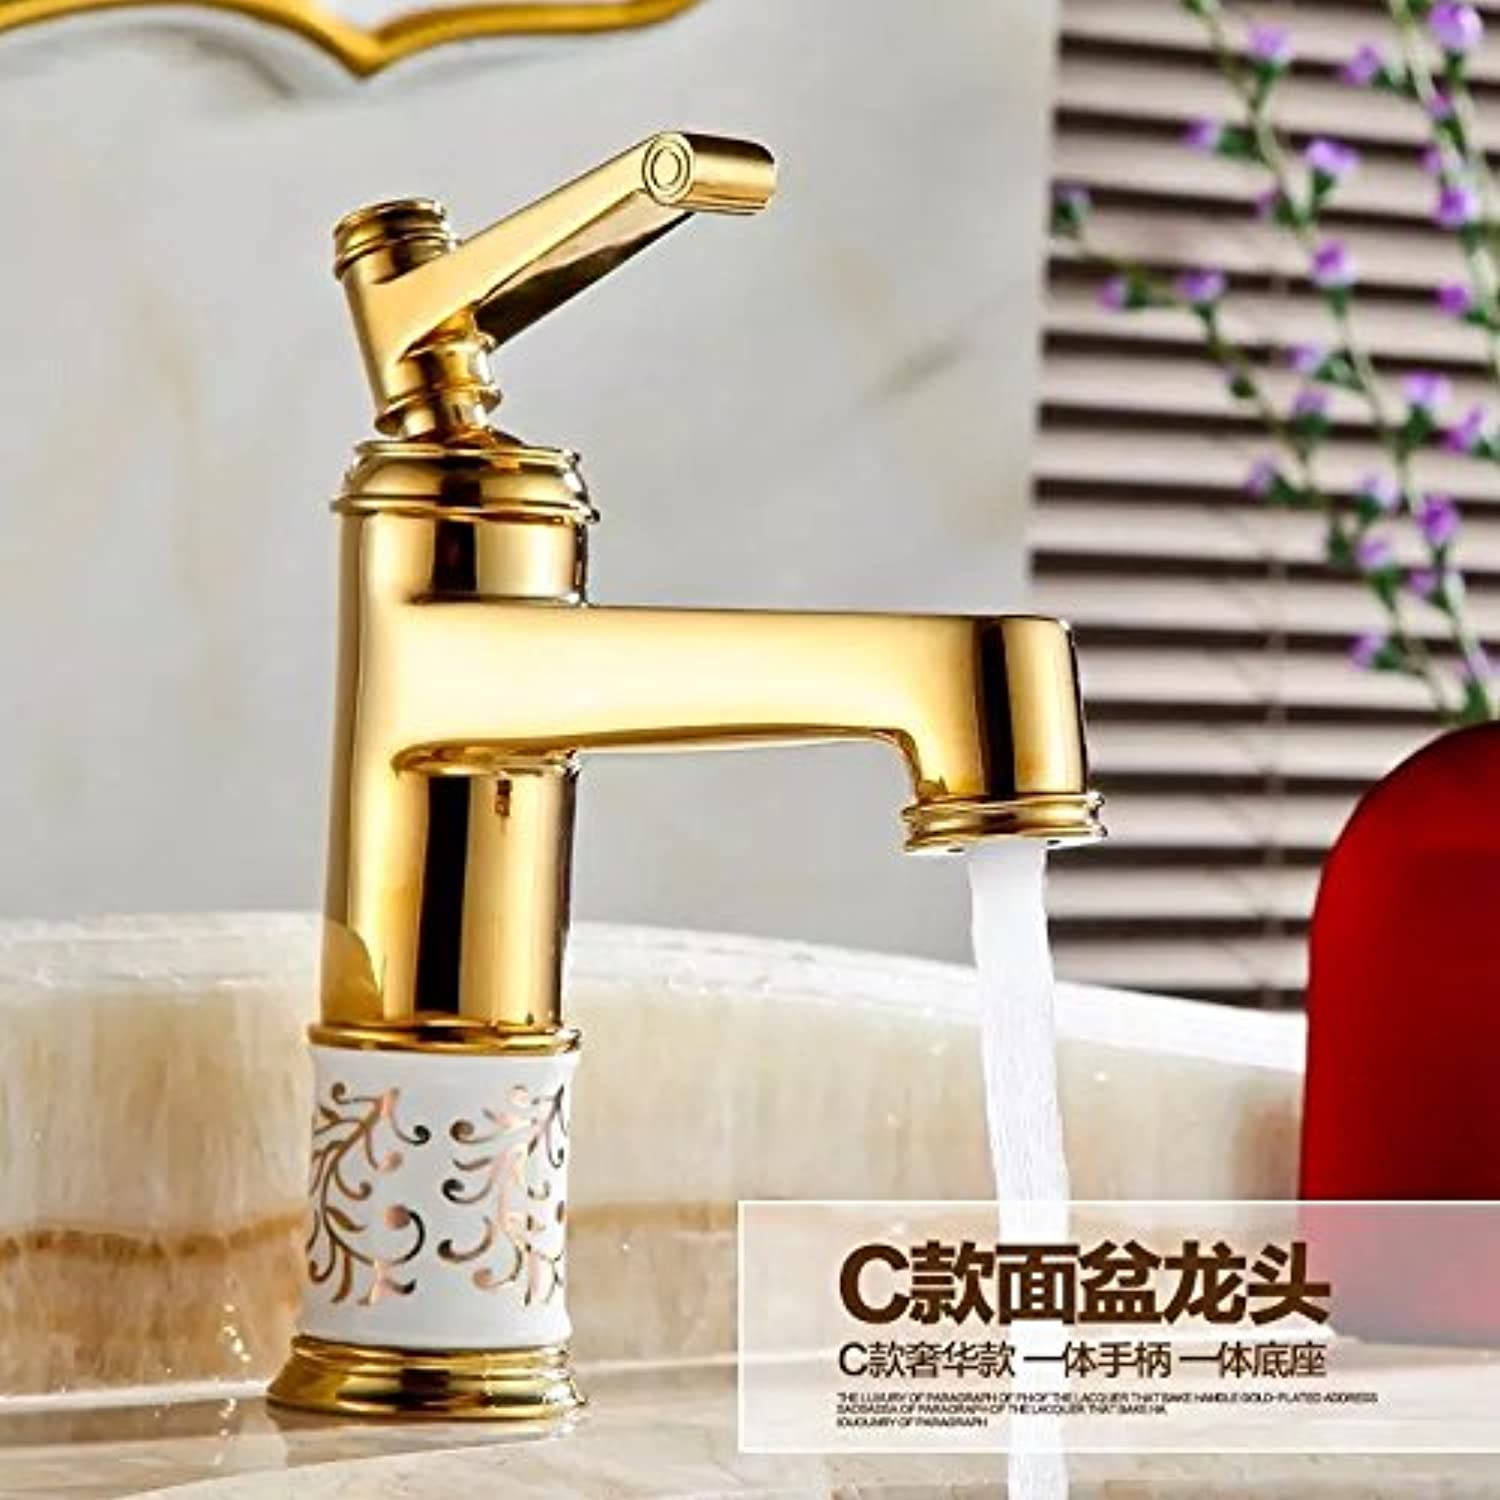 U-Enjoy golden Faucet Diamond Top Quality Faucet The Crystal Sphere Home Bathroom Kitchen Tap Bathroom Wash Water Tap (Free Shipping)